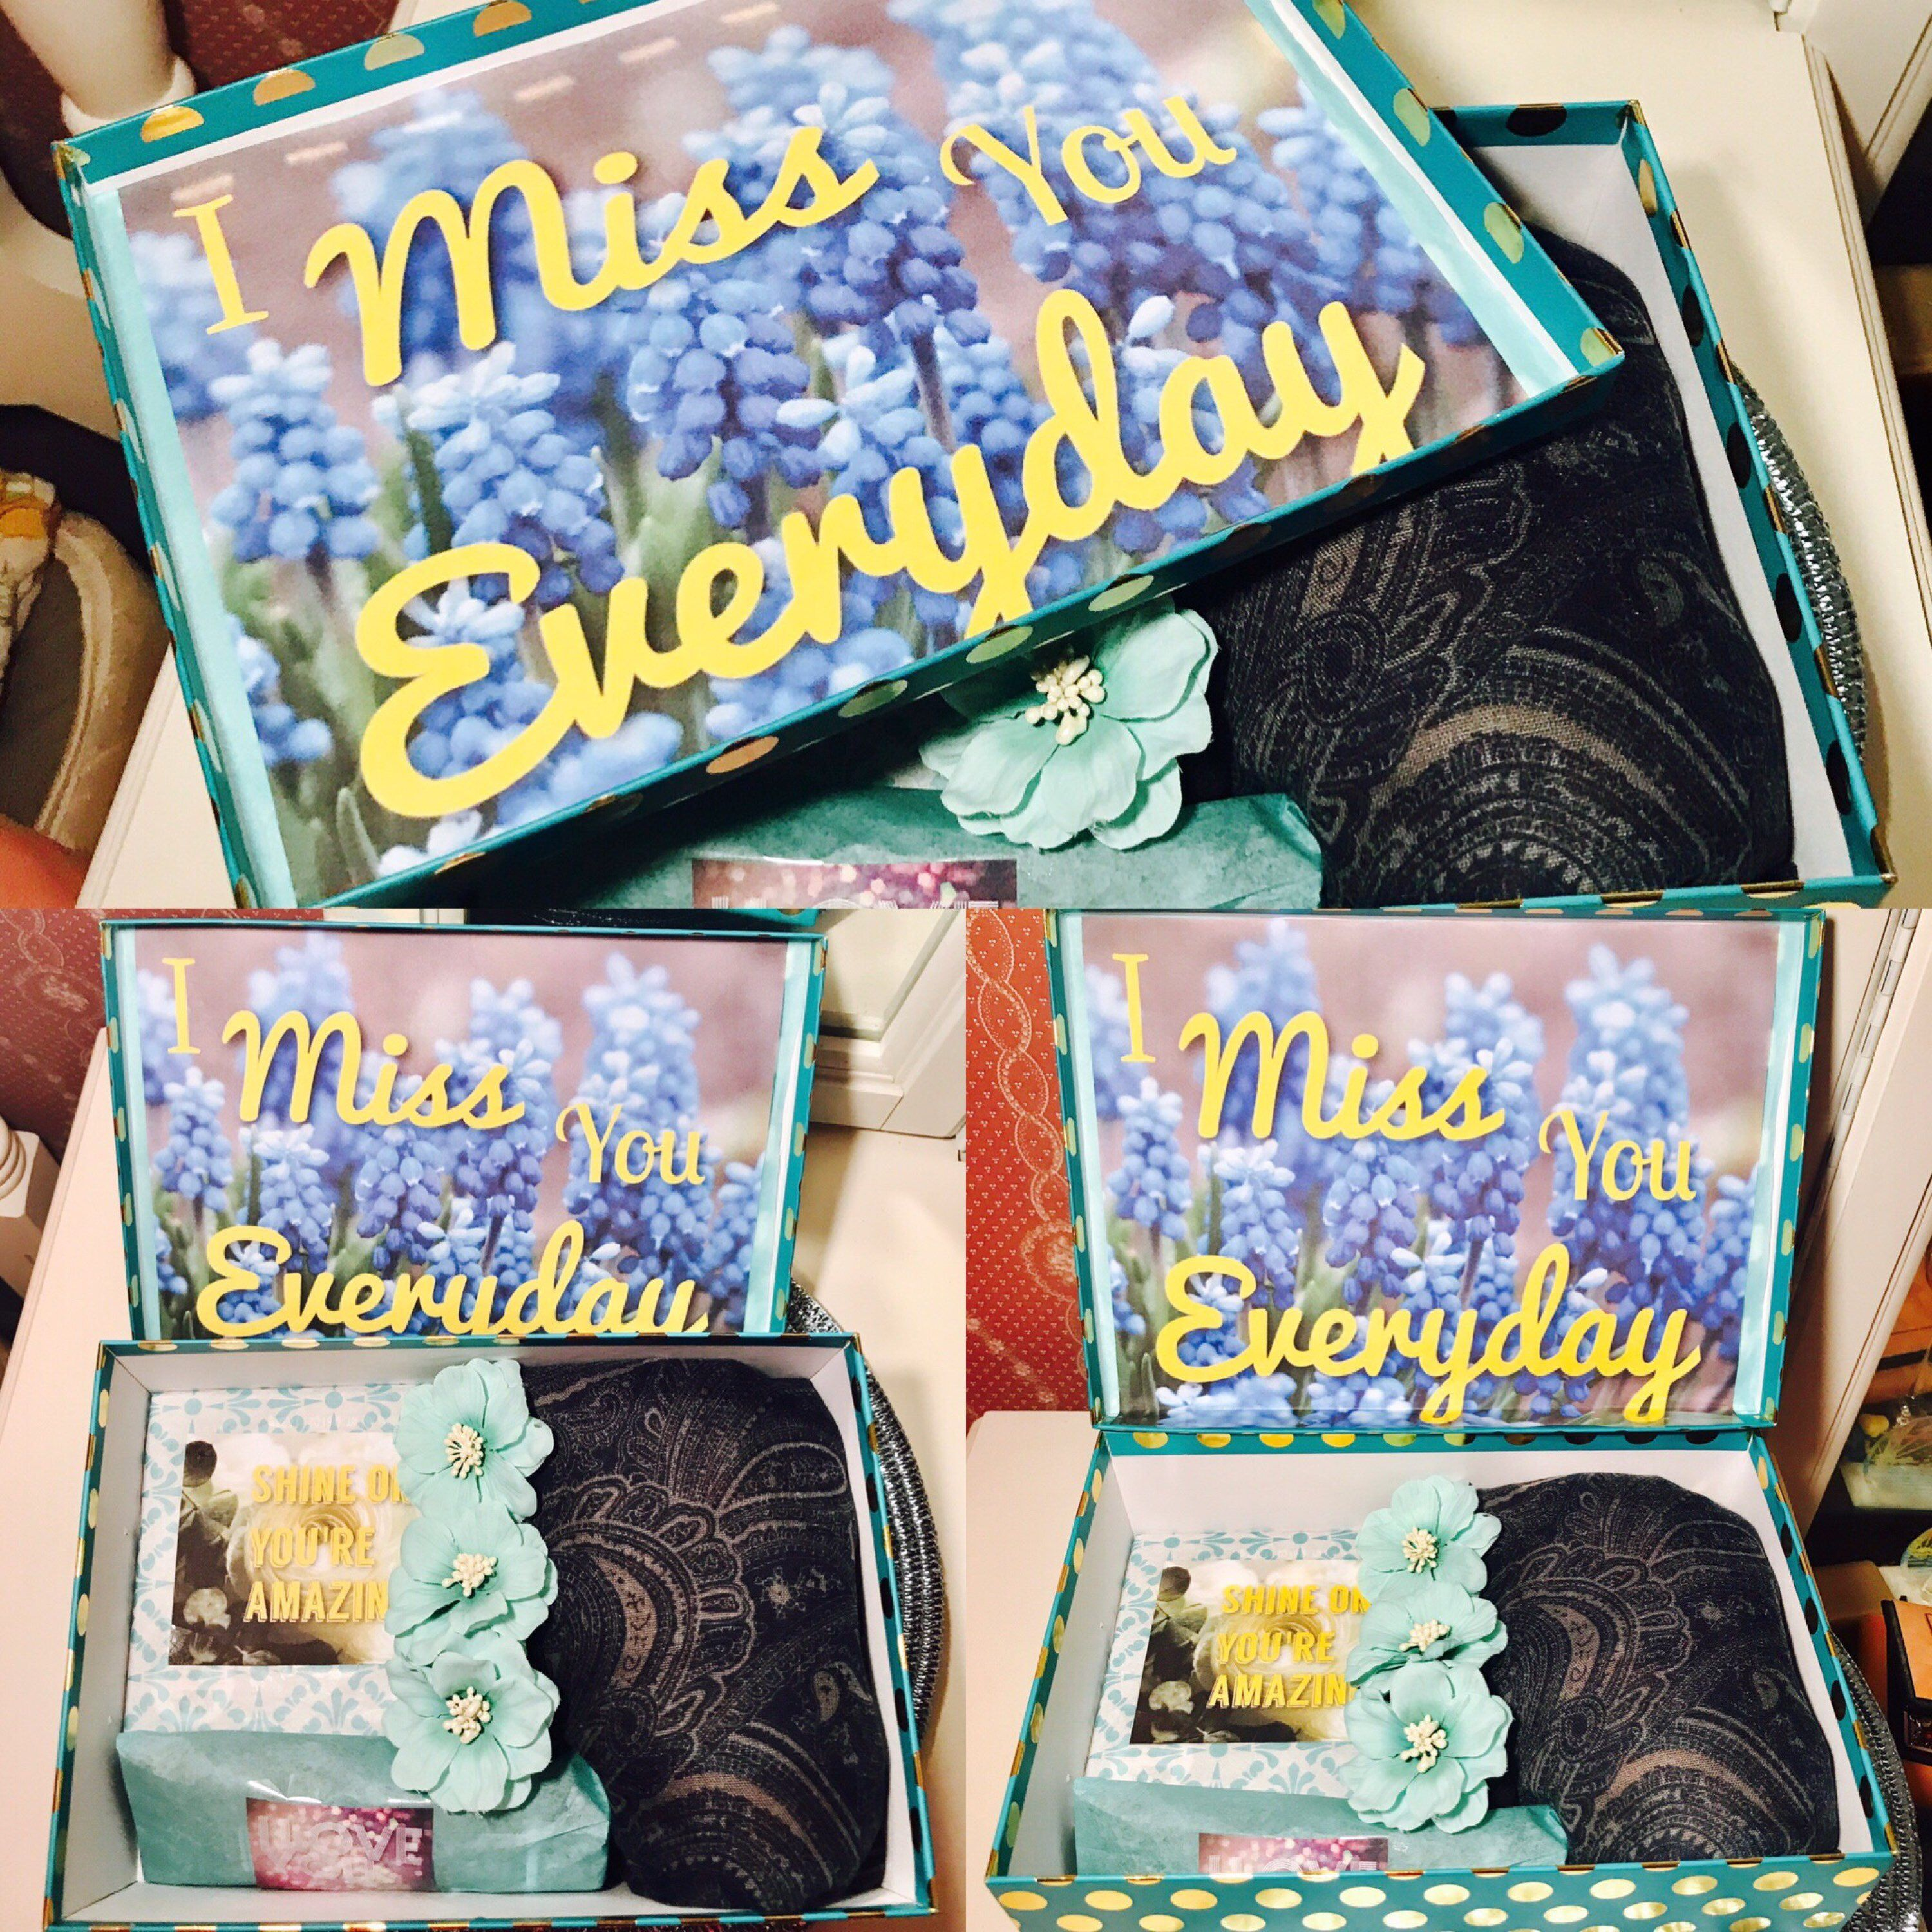 Do you miss her send her a youarebeautifulbox let her